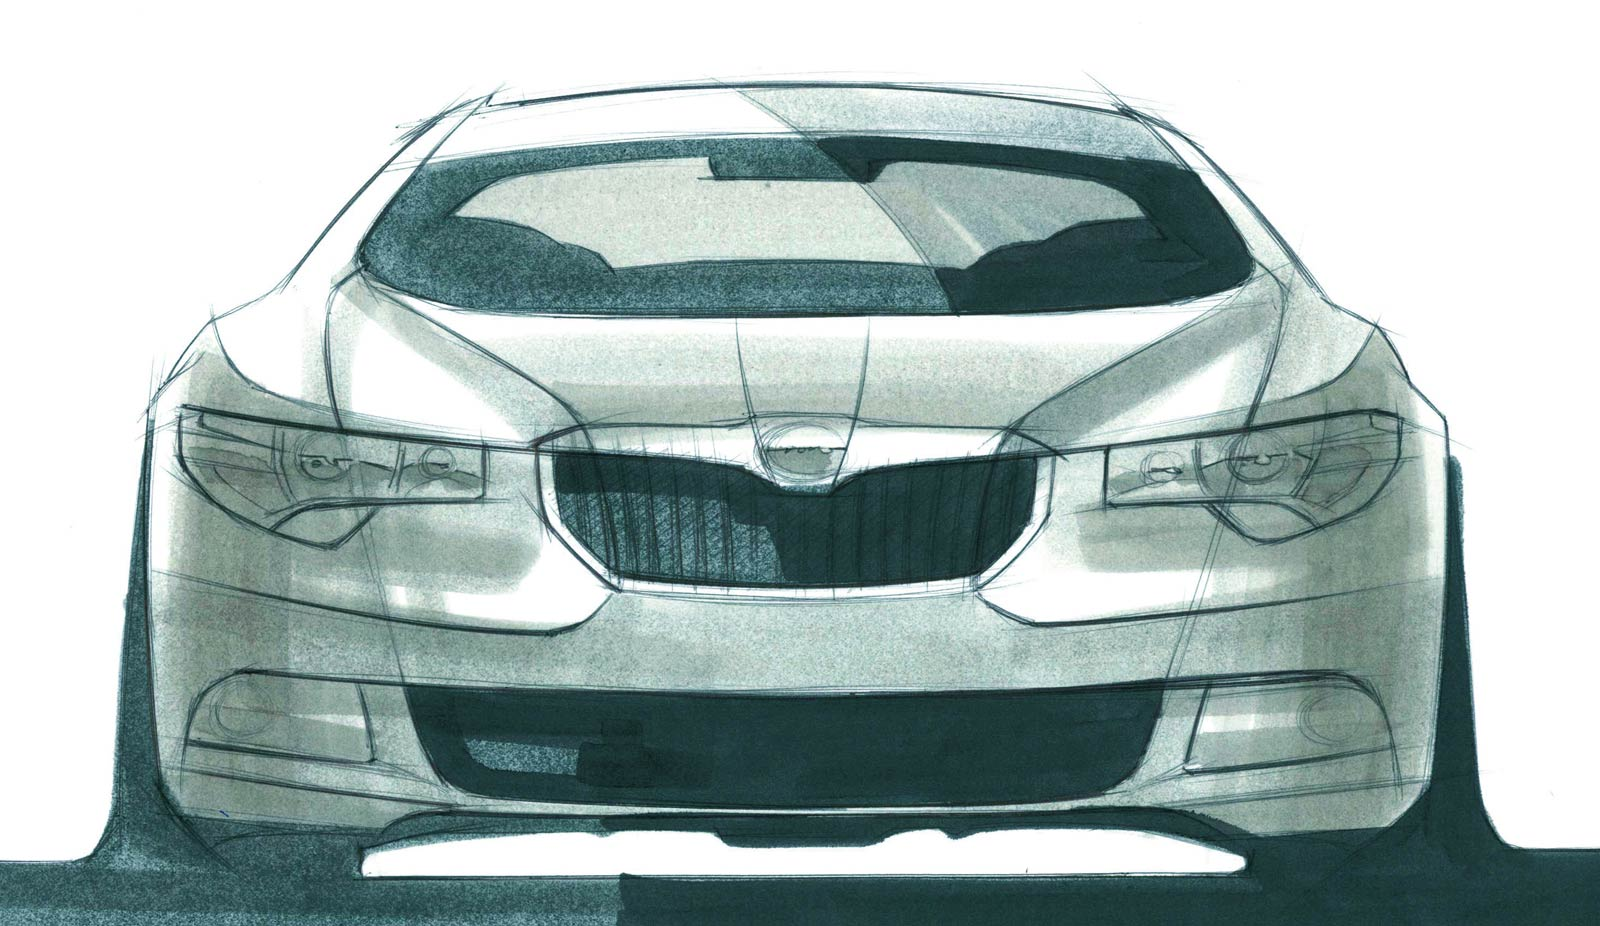 Skoda Superb: design story